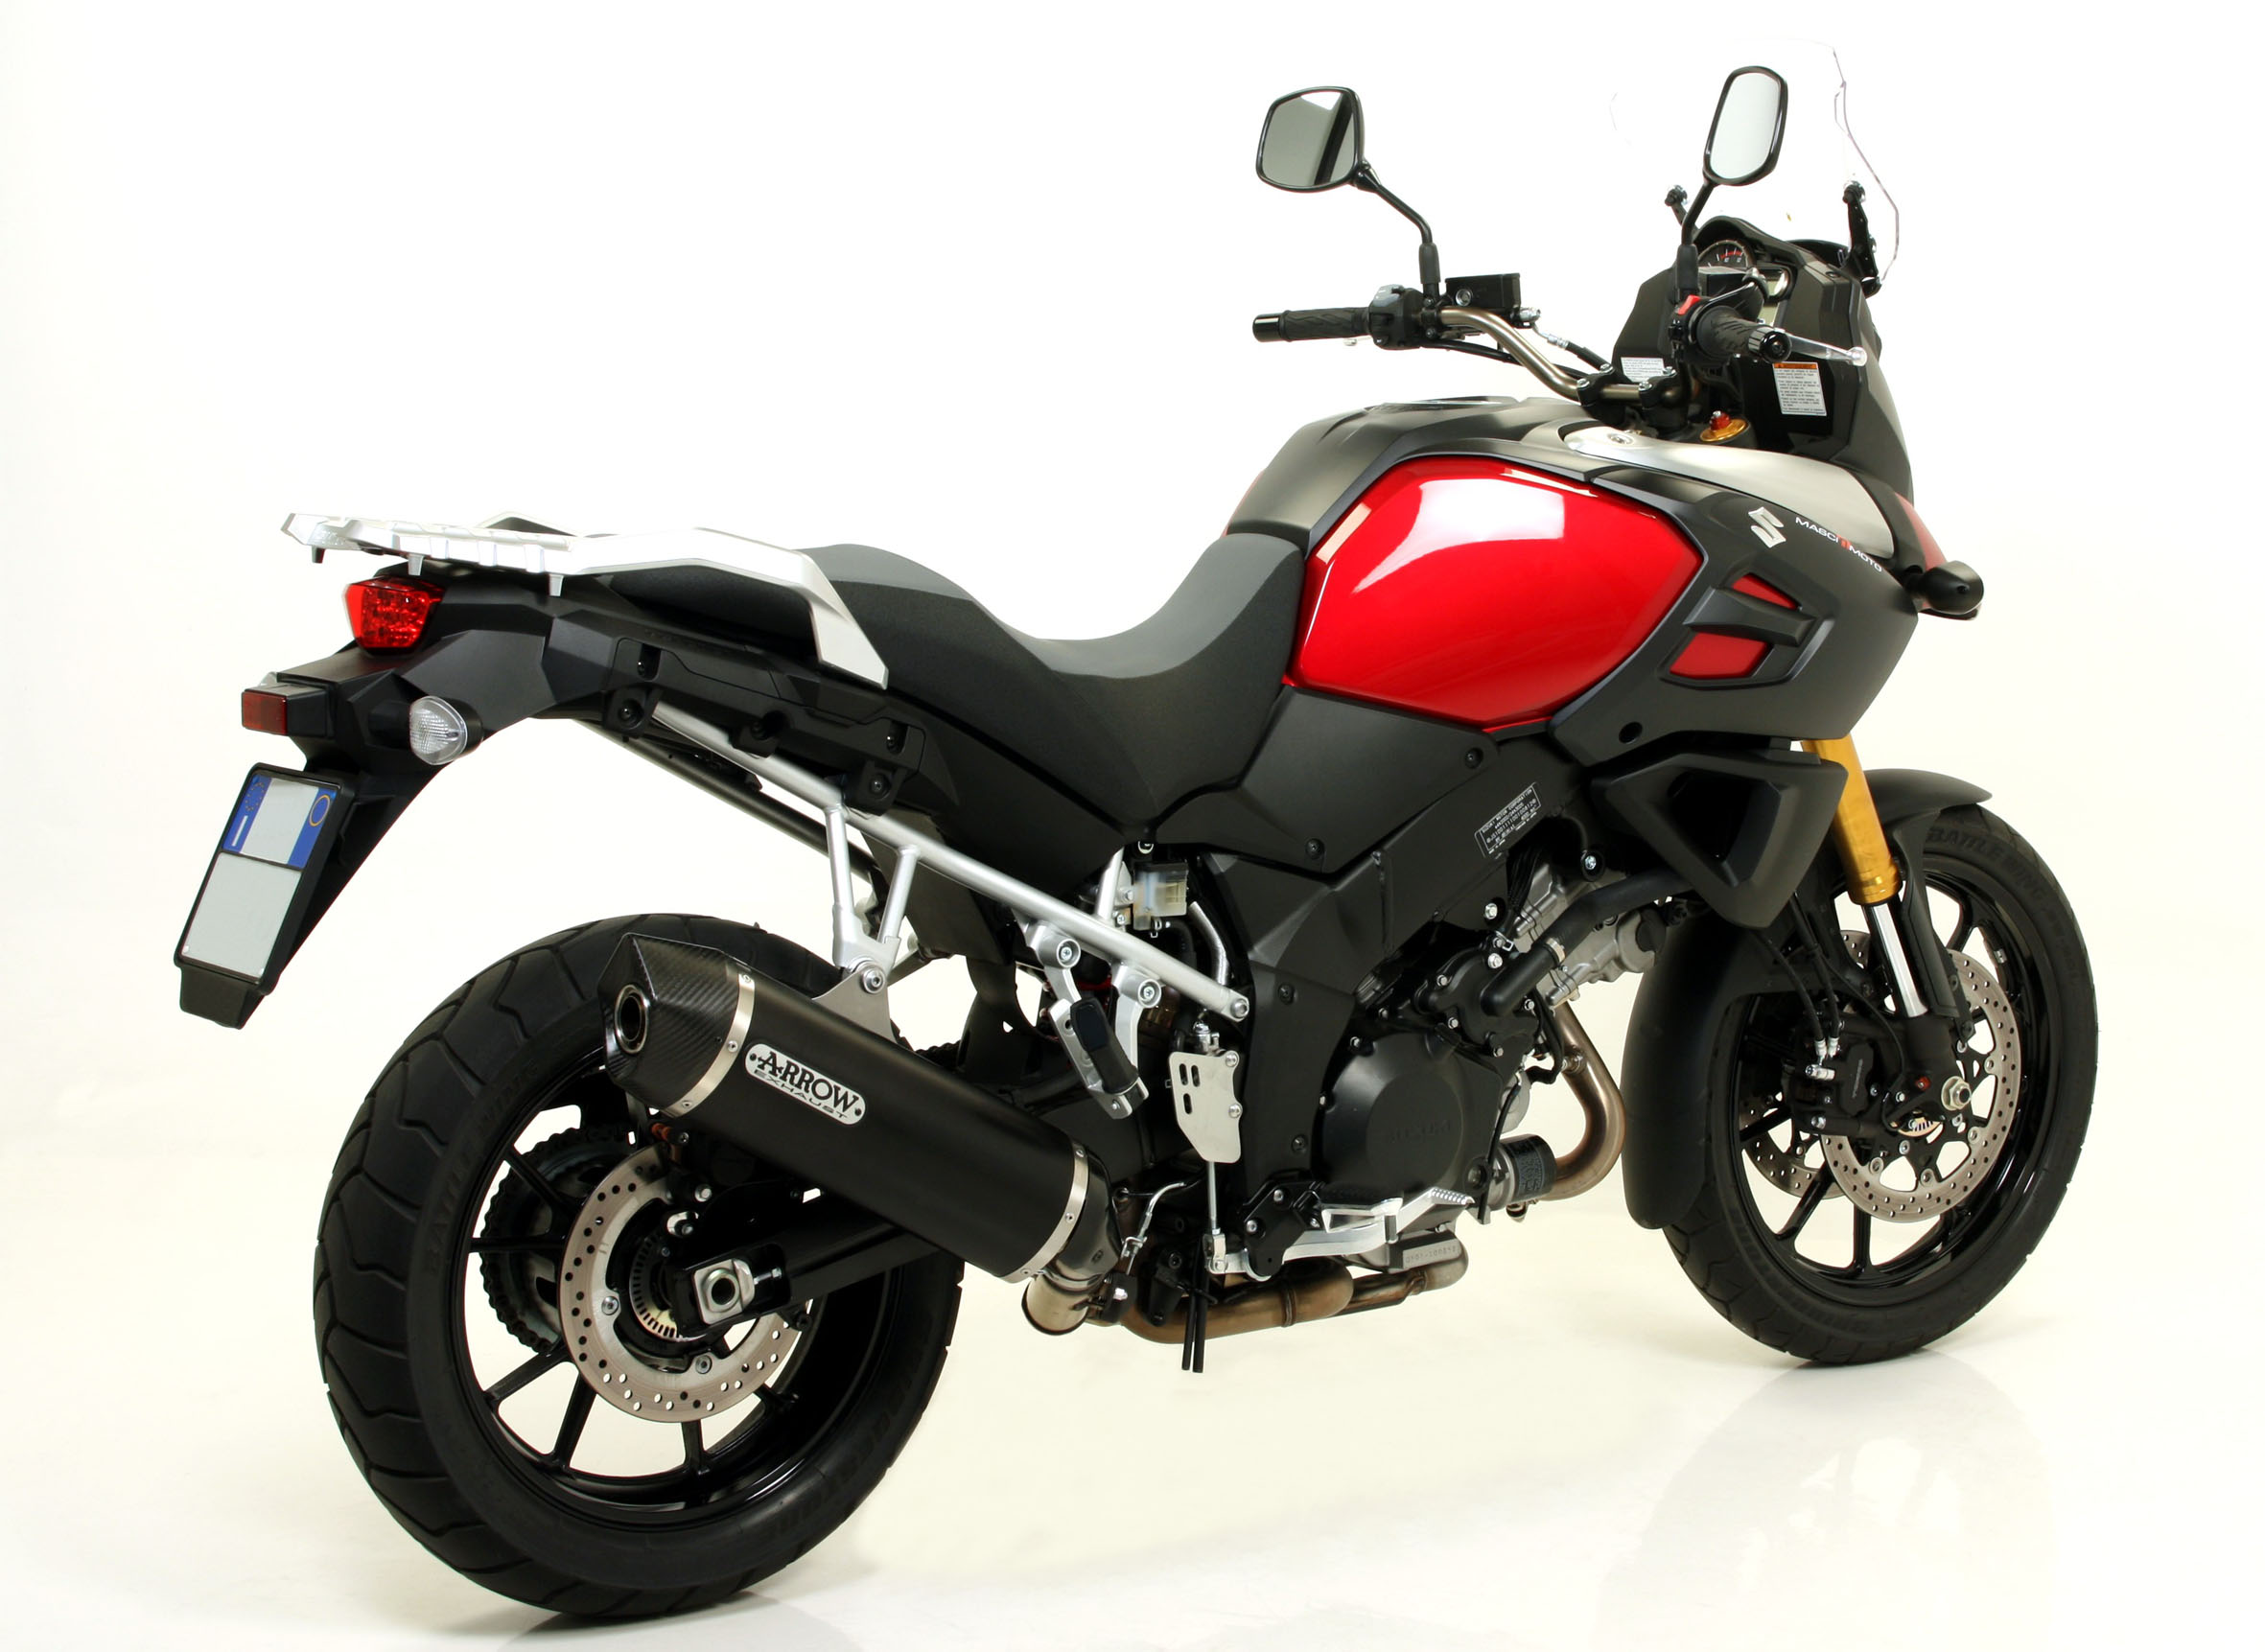 arrow releases exhaust for new v strom 1000 a pair of stroms. Black Bedroom Furniture Sets. Home Design Ideas